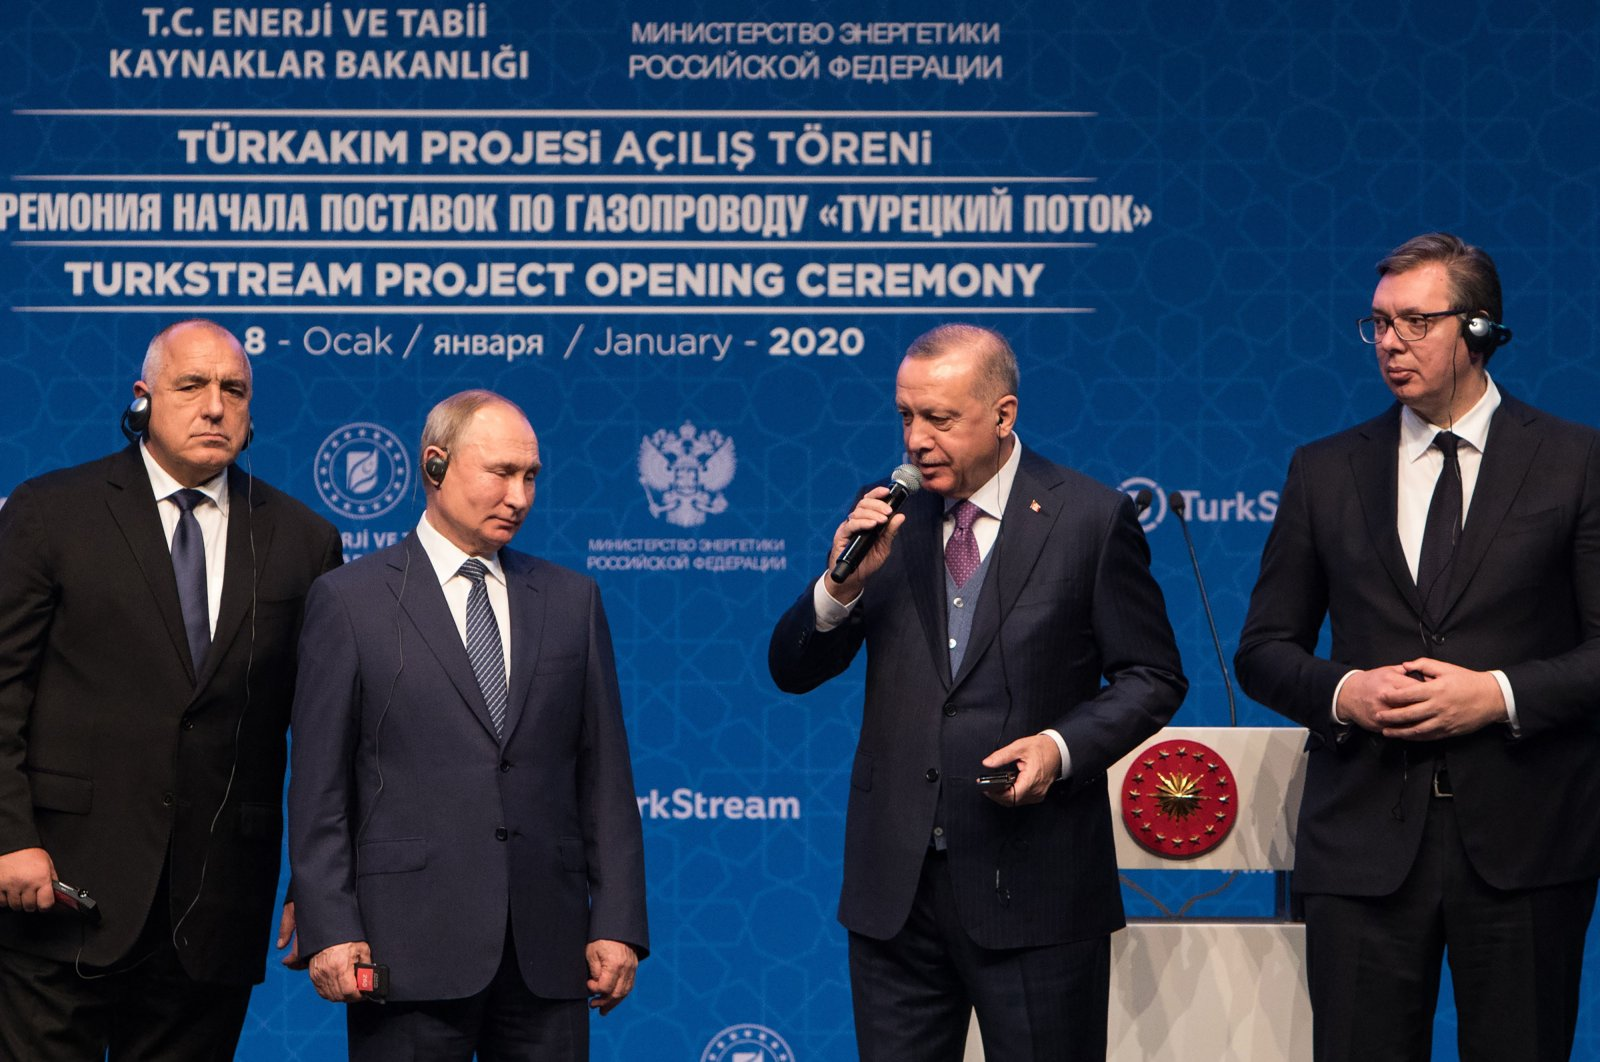 President Recep Tayyip Erdoğan (2nd R) speaks beside Russian President Vladimir Putin (2nd L), Bulgarian Prime Minister Boyko Borisov (L) and Serbian President Aleksandar Vucic during the inauguration ceremony for the TurkStream natural gas pipeline, Istanbul, Turkey, Jan. 8, 2020. (Getty Images)